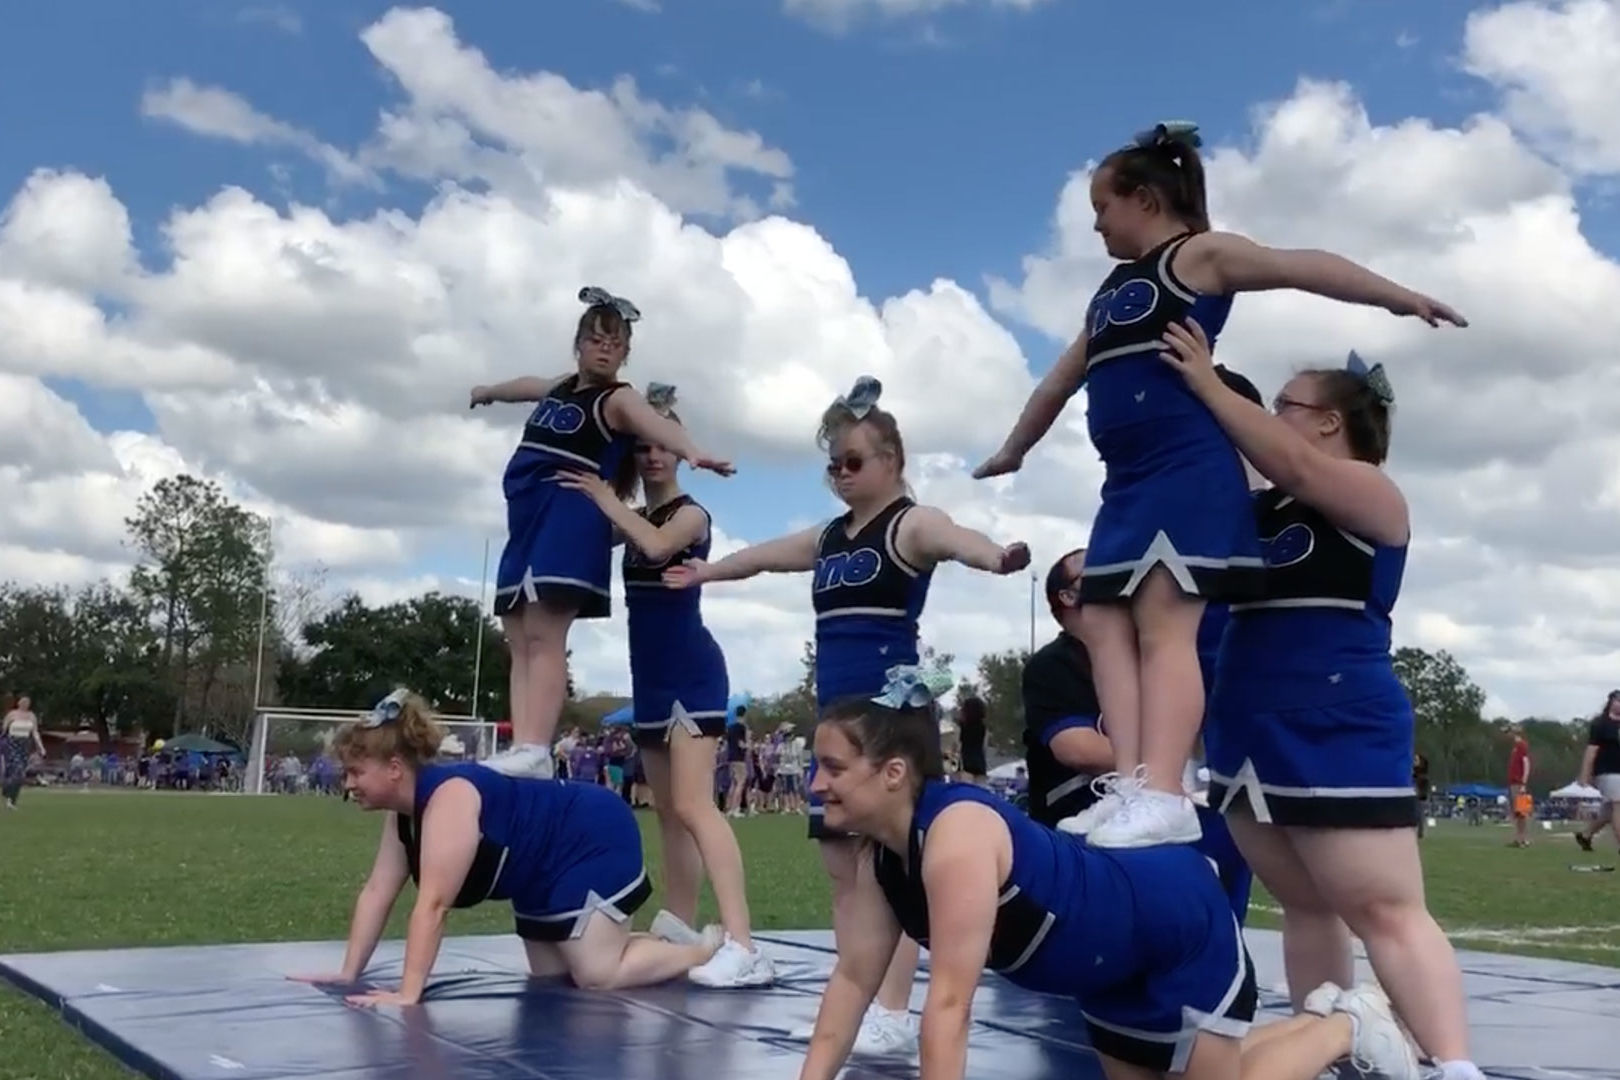 Special Needs Cheerleading Team Wows with Elaborate Routine